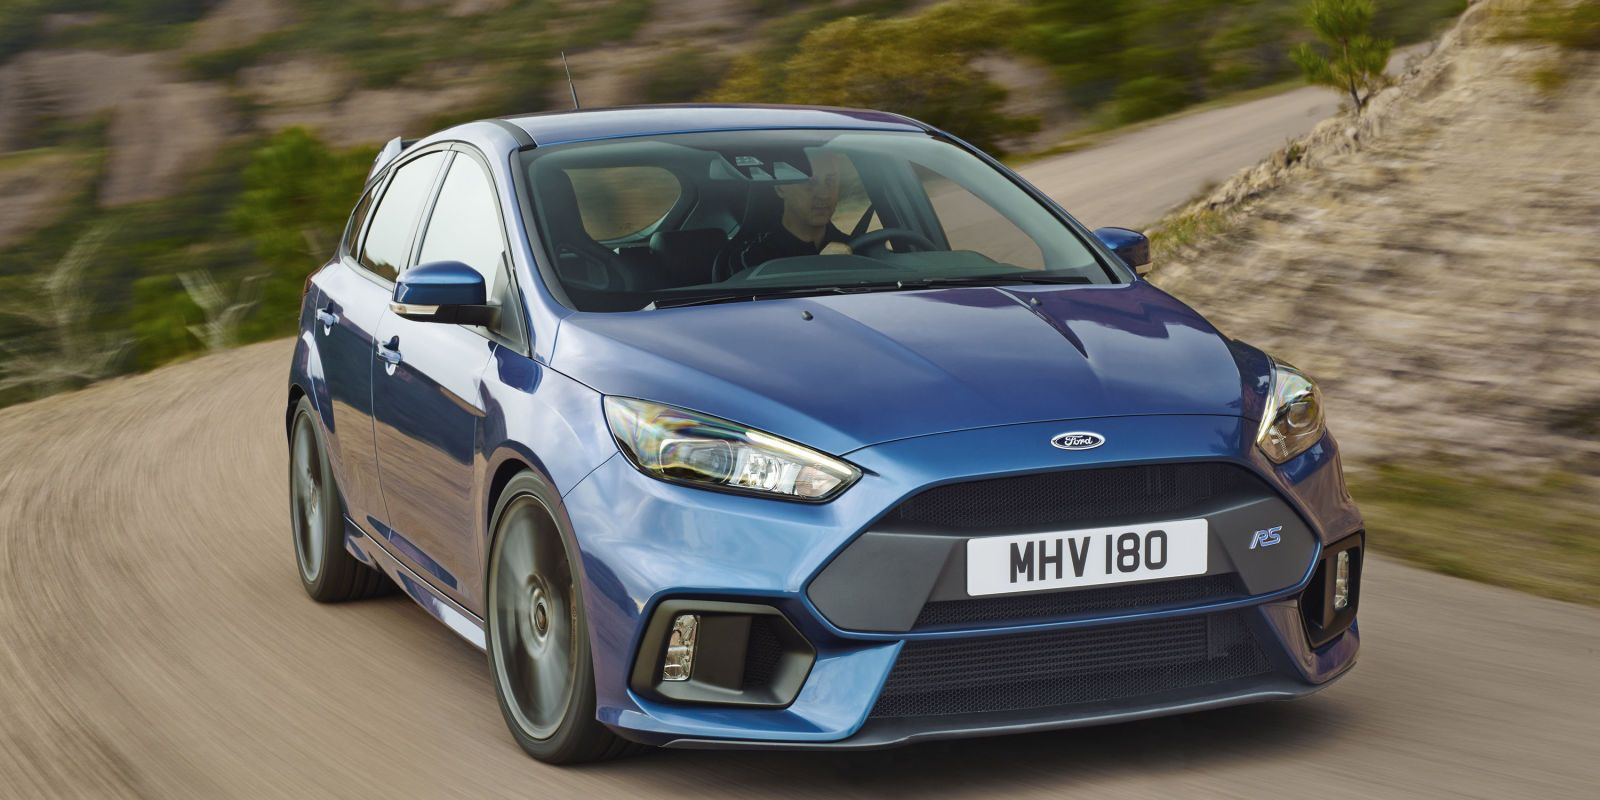 Ford Focus Rs Drift Mode Explained Ford Focus Rs Ford Focus New Ford Focus